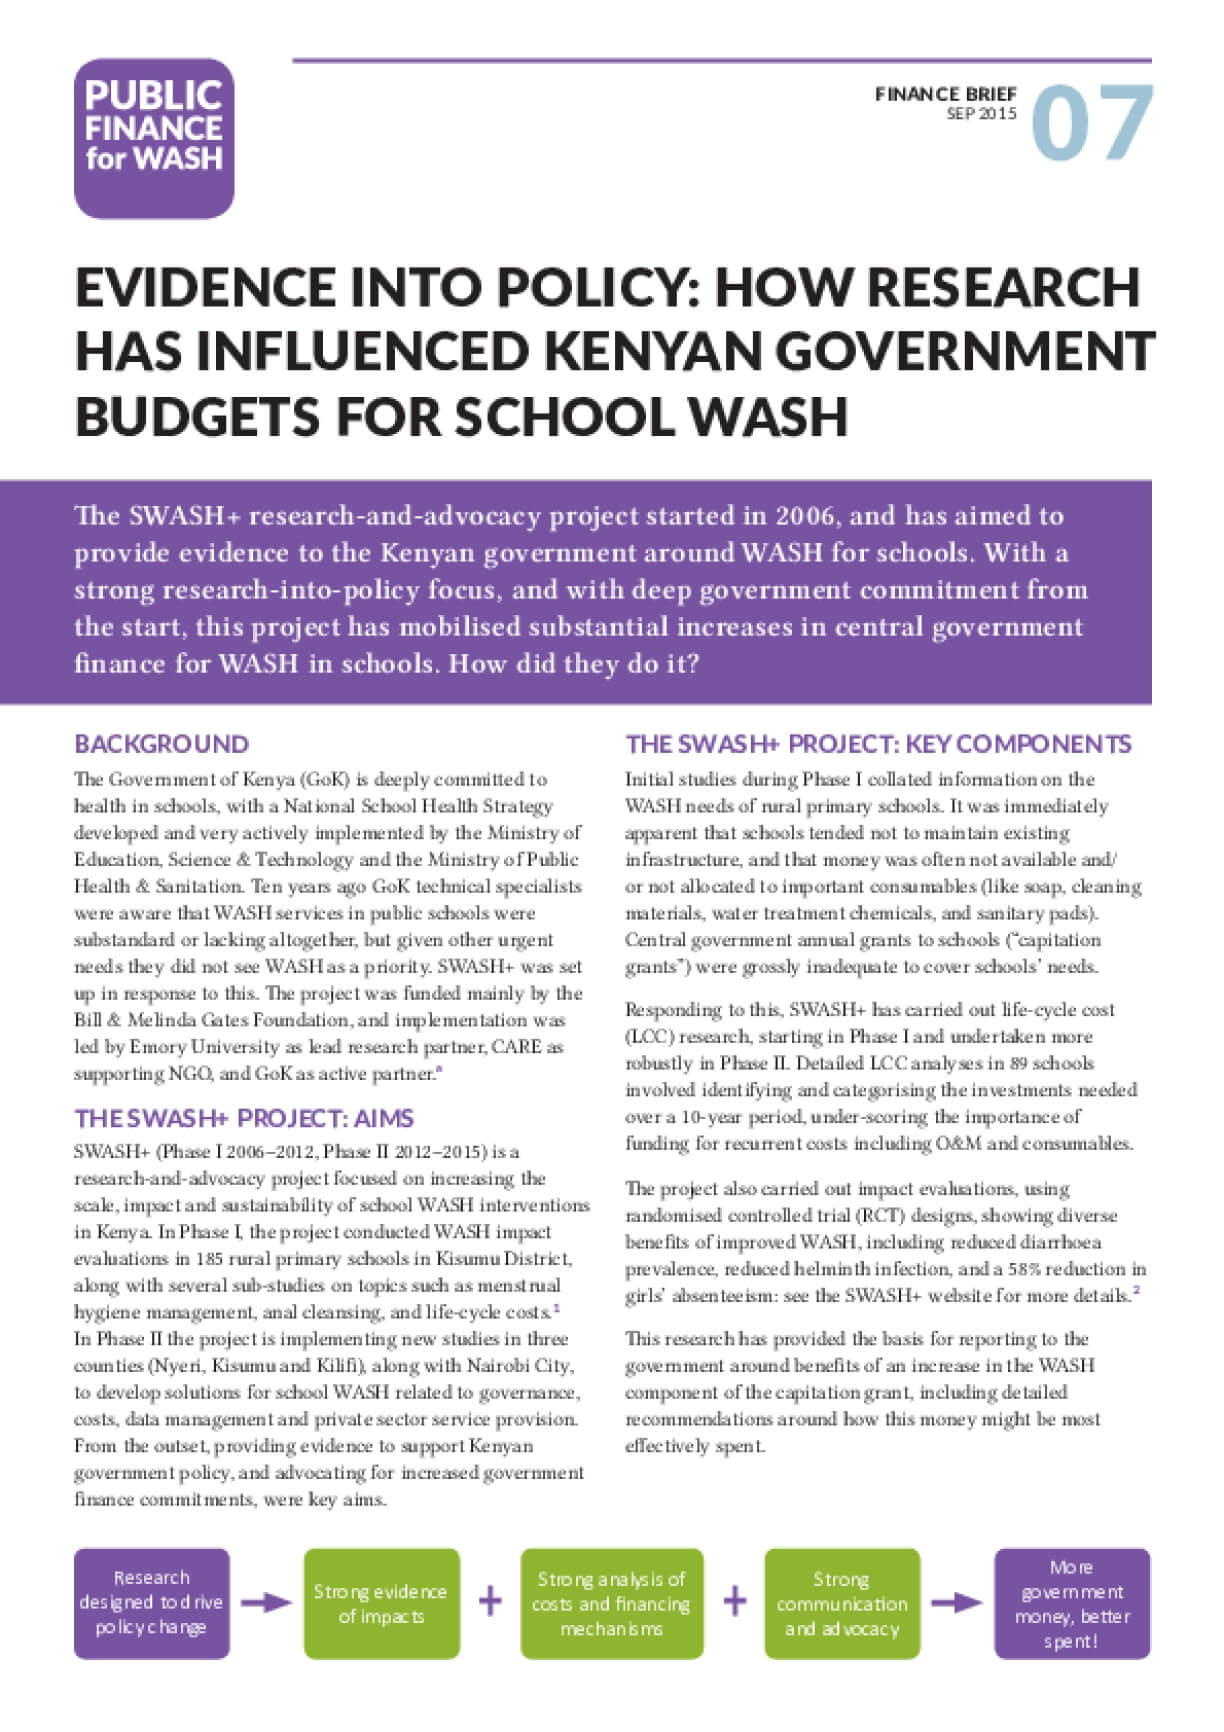 Evidence into Policy: How Research has Influenced Kenyan Government Budgets for School Wash